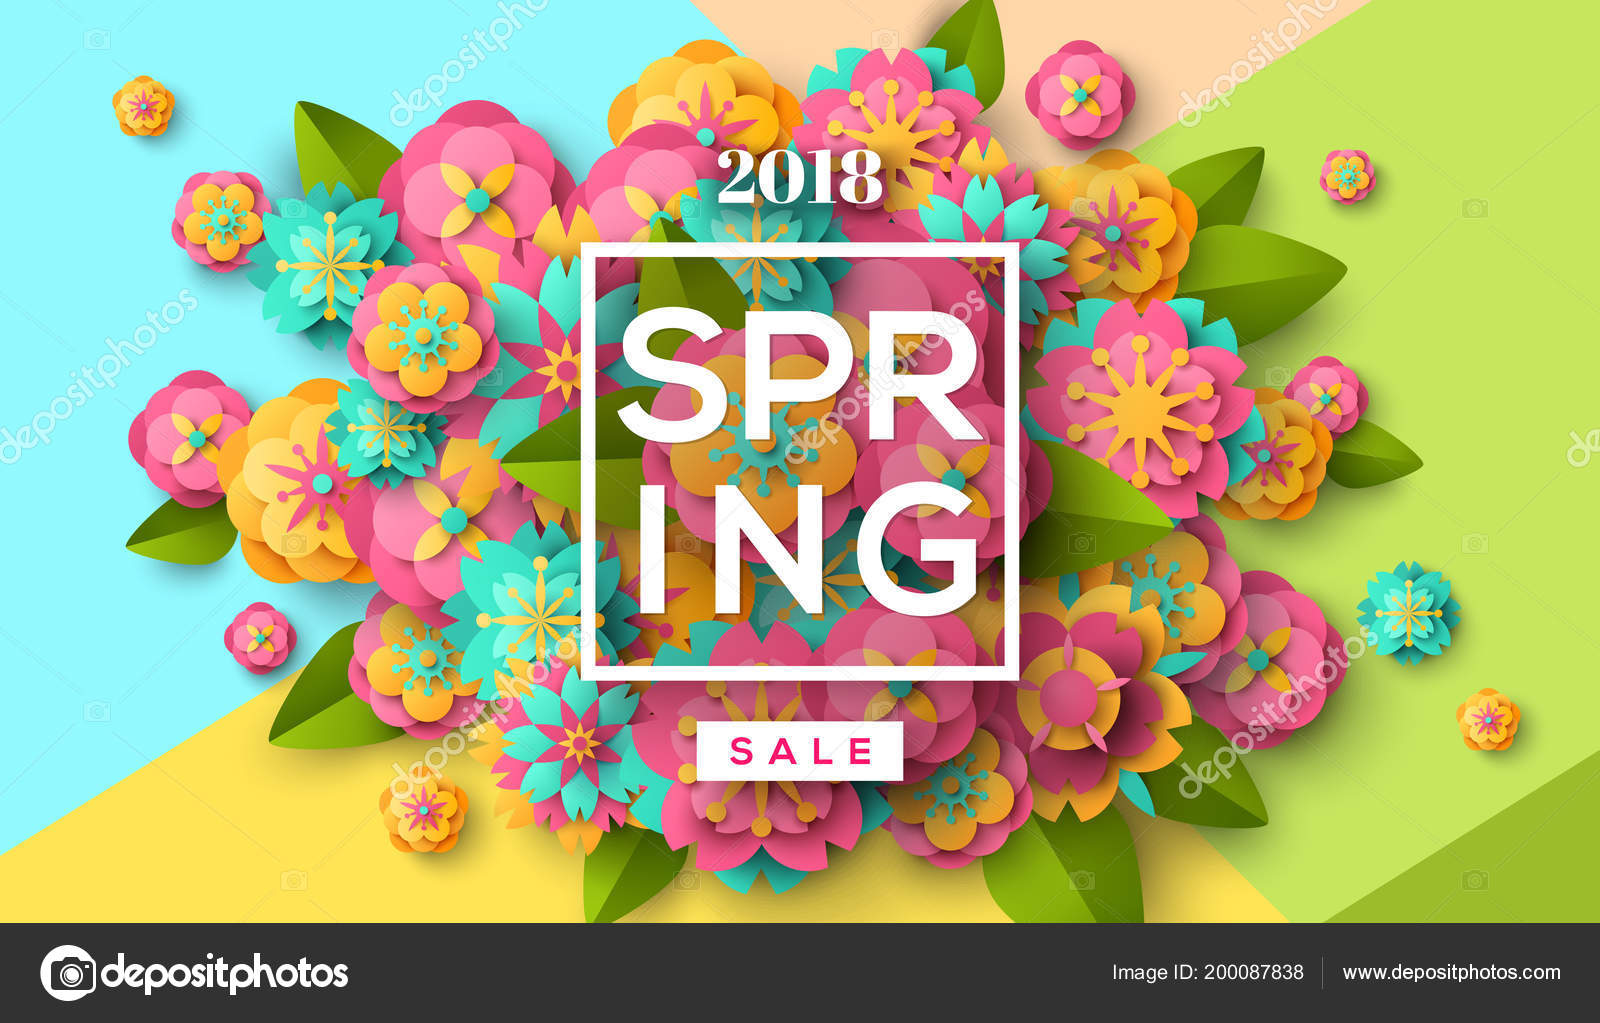 spring sale flyer template paper cut flowers leaves frame bright